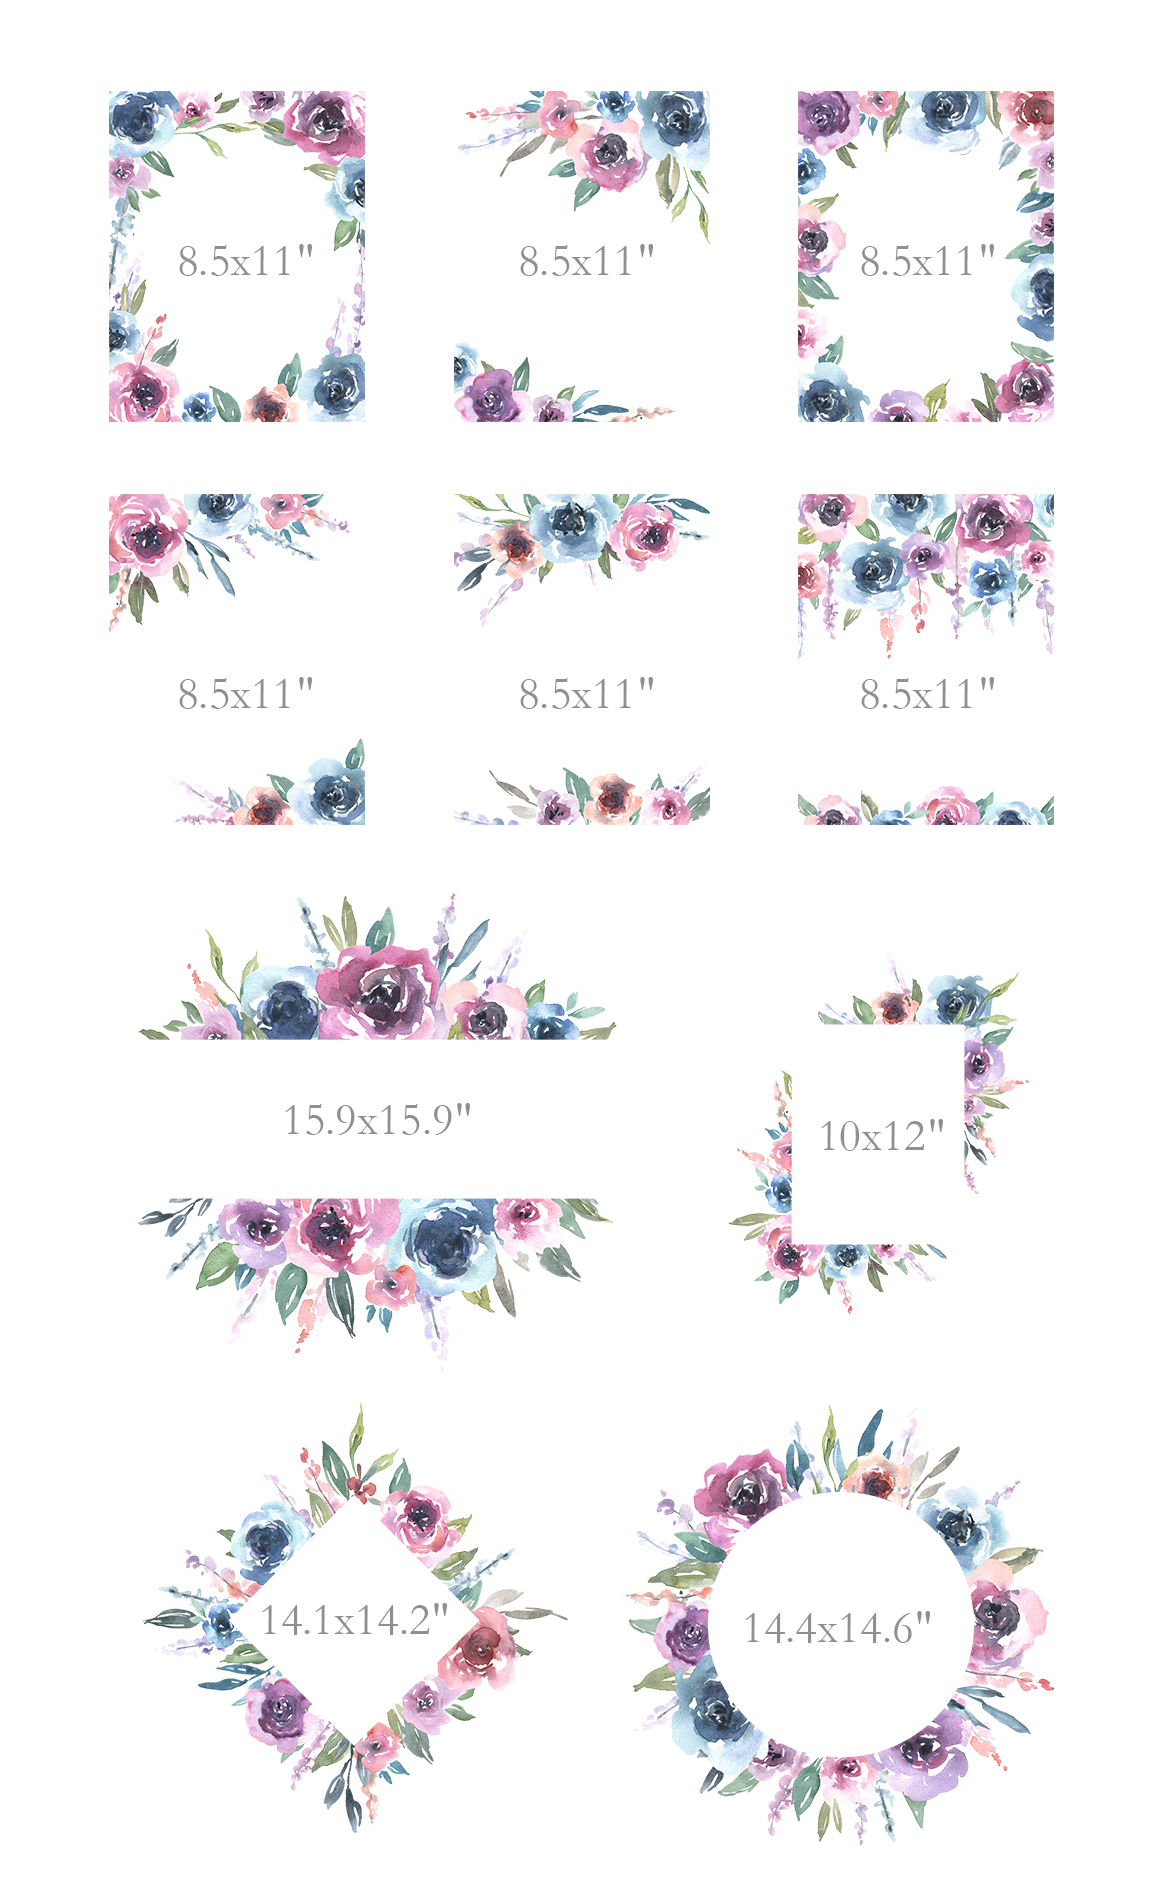 Watercolor Pink Blue Flowers Bouquets Frames example image 4